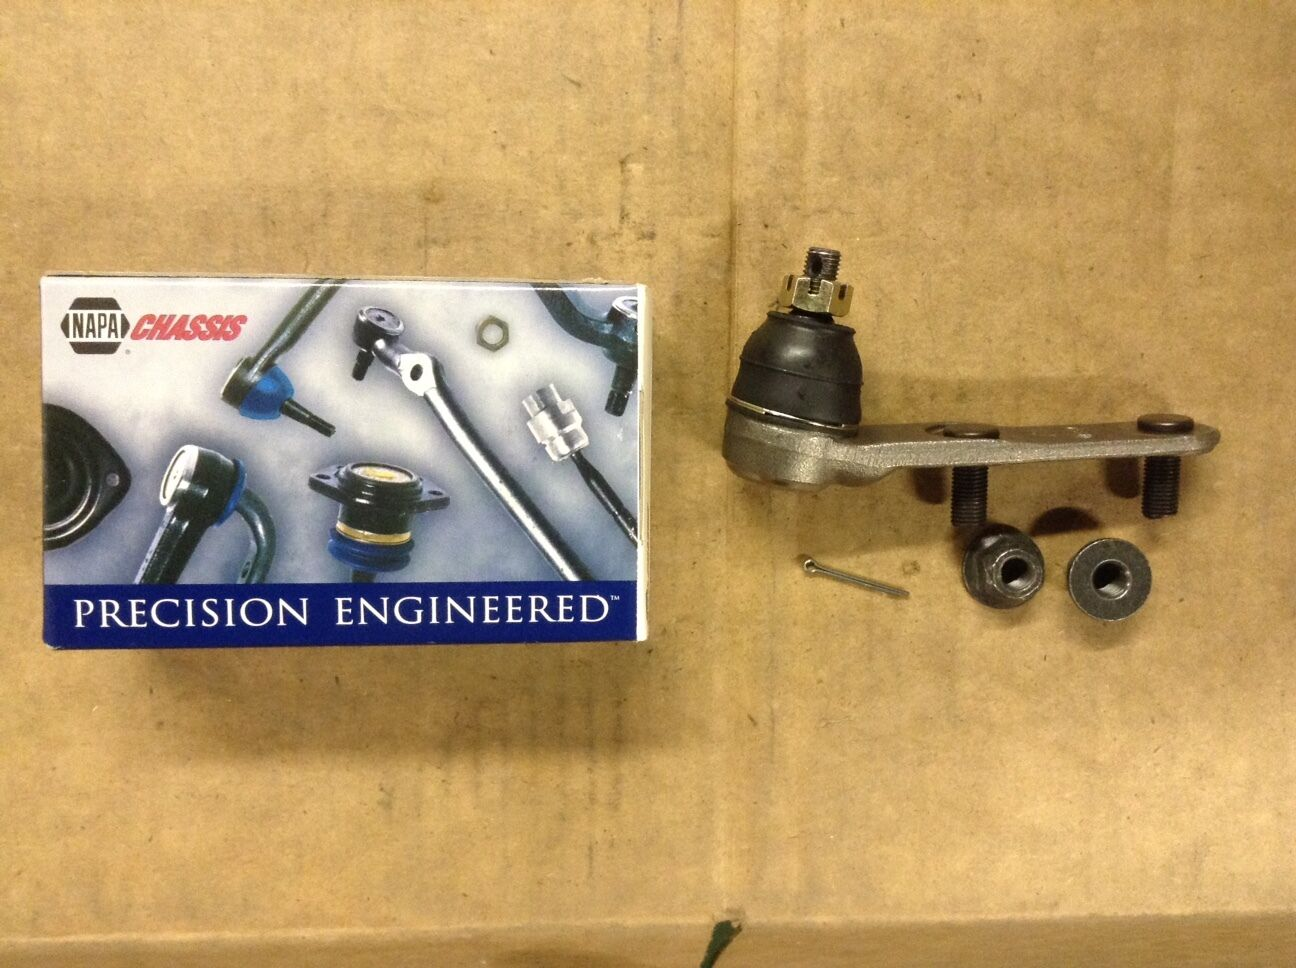 New Napa 260 1432 Suspension Ball Joint Front Upper Fits 88 91 1992 Honda Prelude Stabilizer Arm 1 Of 5only 2 Available